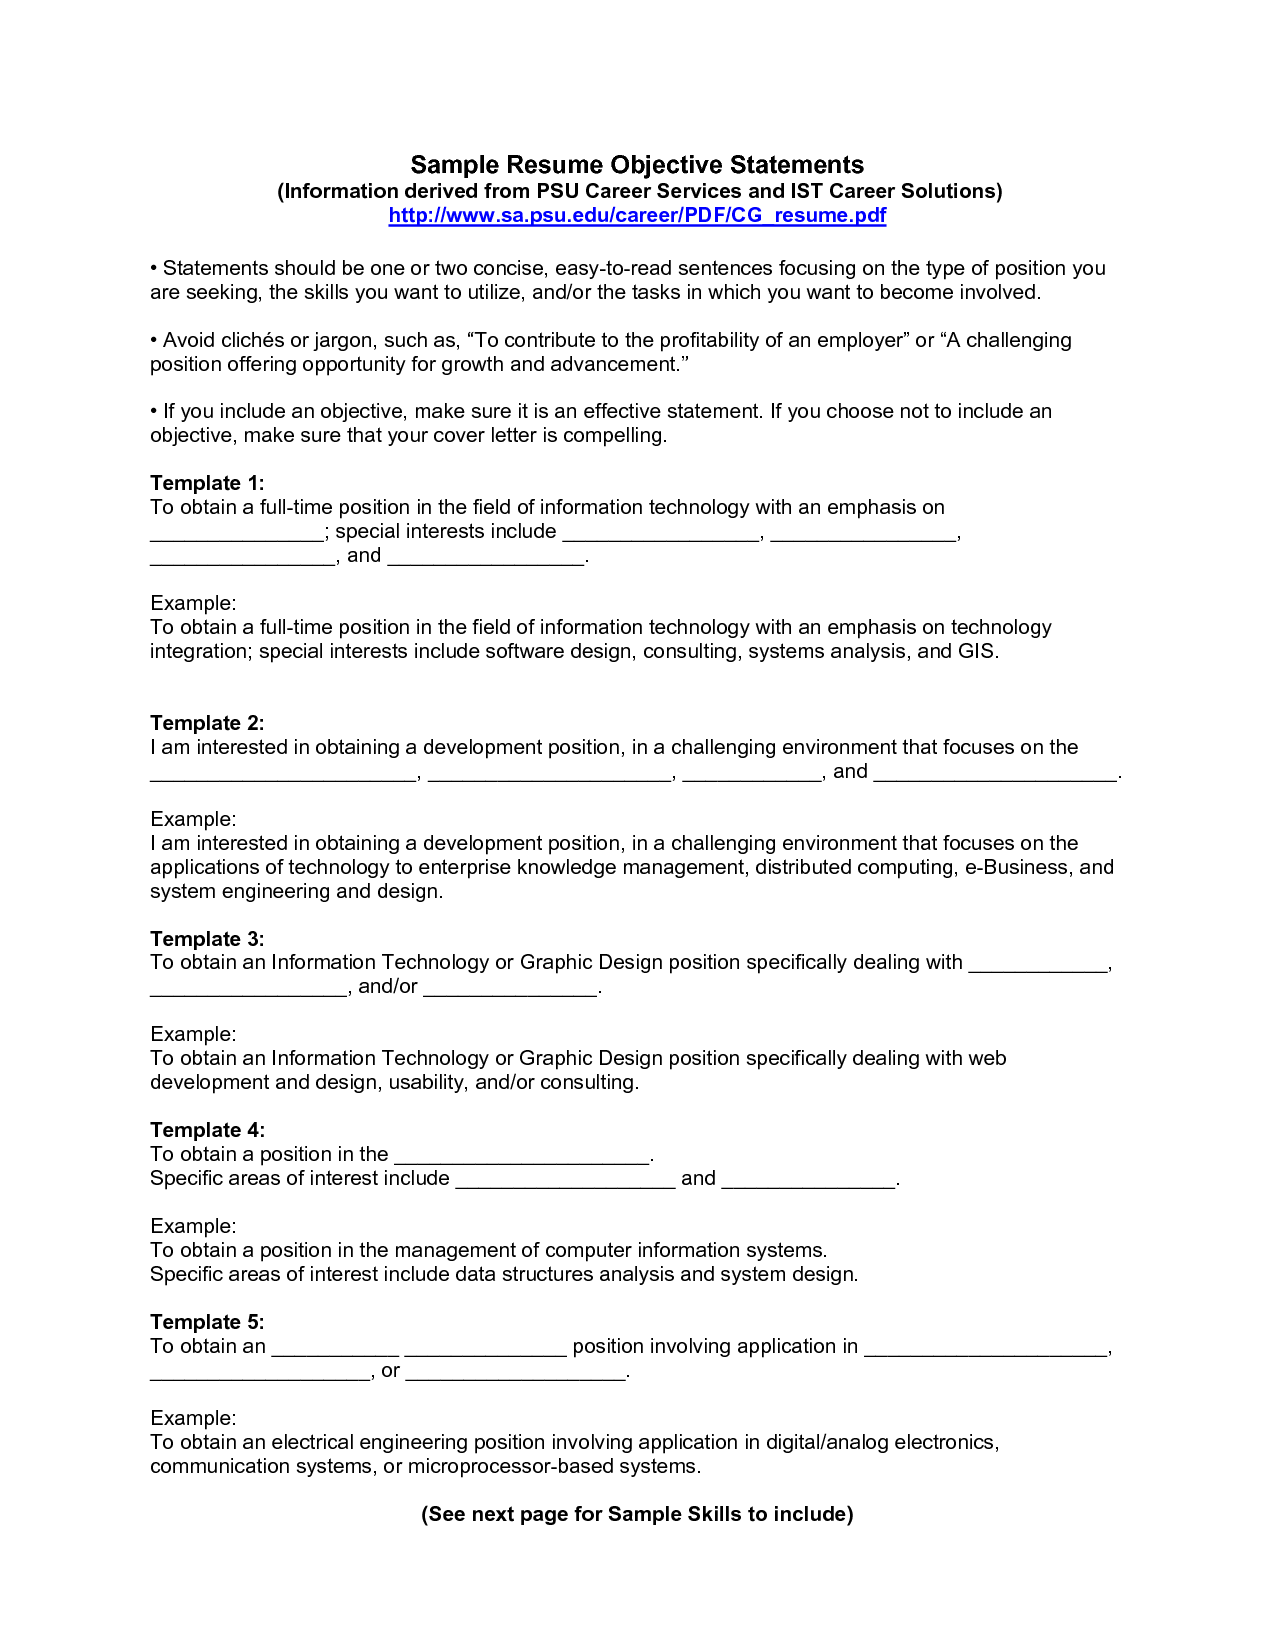 Teaching Resume Objective Sample Good Resume Inspiration Decoration Goal Statements  Home